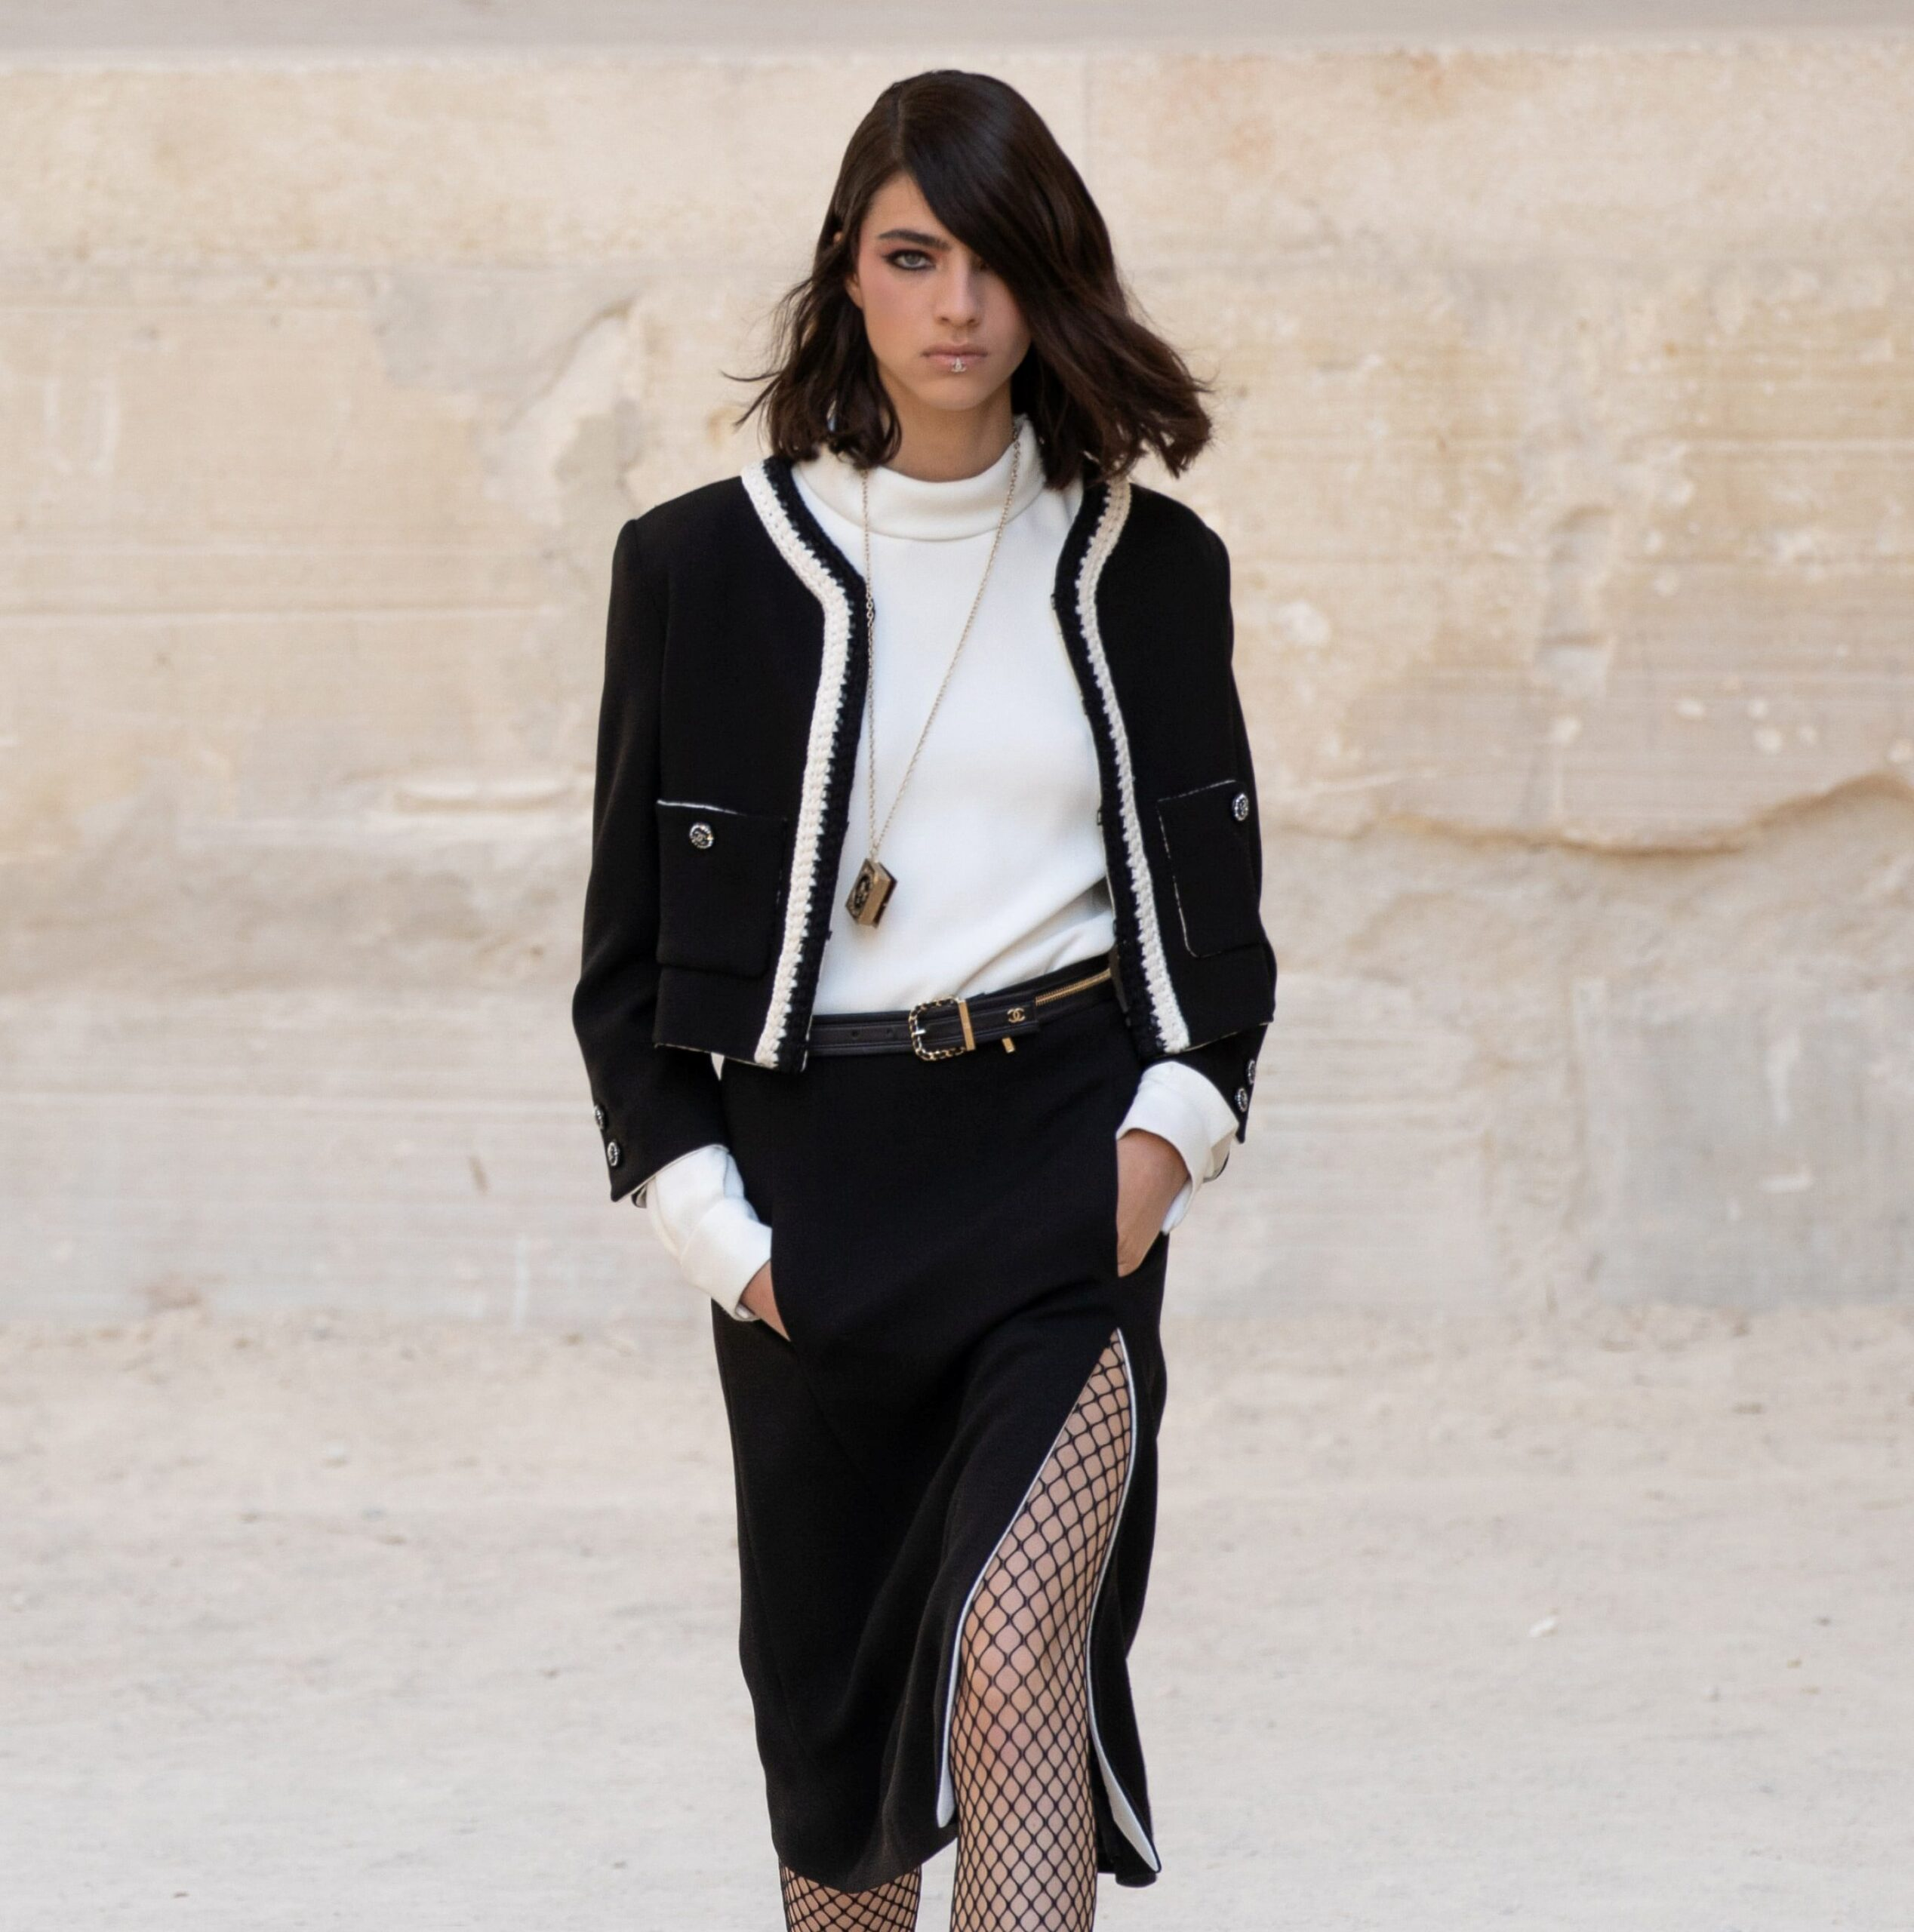 Chanel Resort 2022 Collection